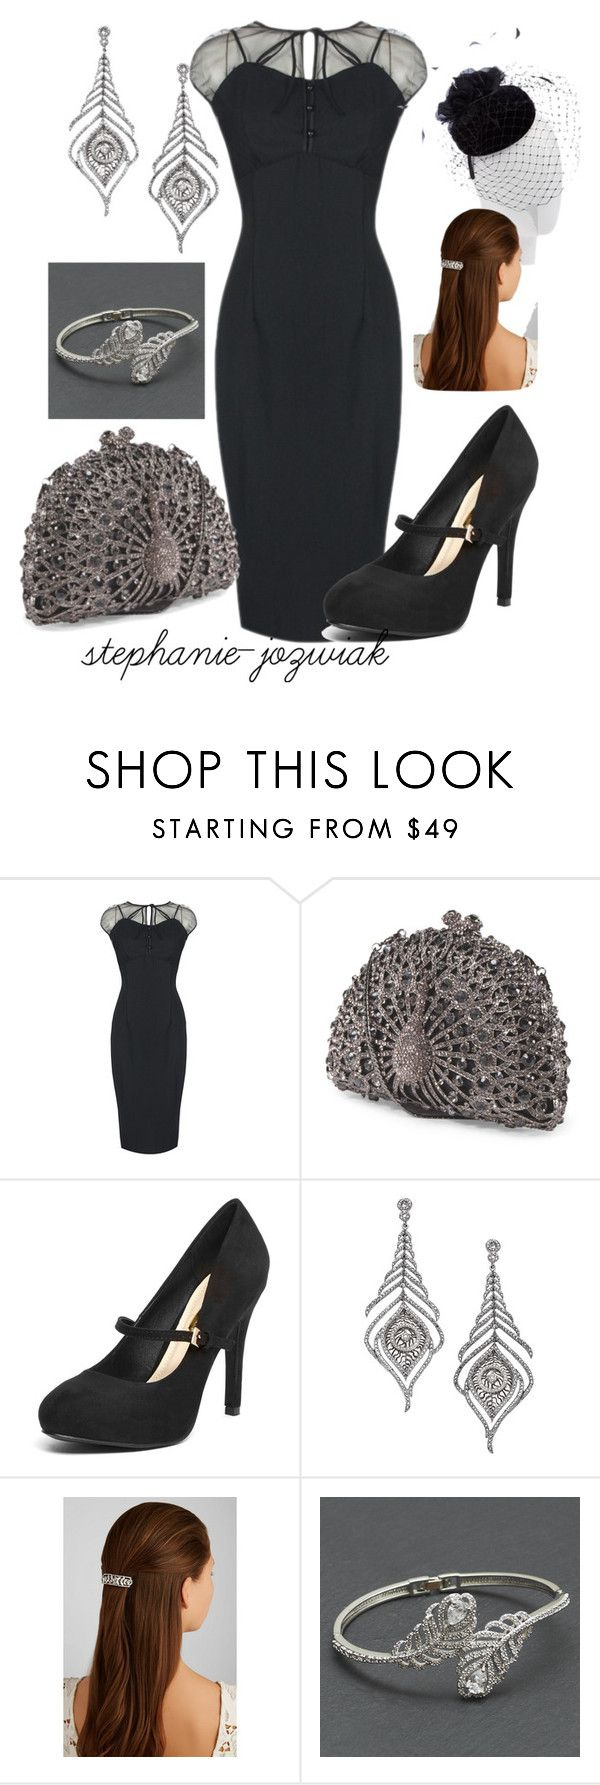 """""""Meleri's Dress for Kathrine's Funeral"""" by stephanie-jozwiak ❤ liked on Polyvore featuring John Lewis, Dorothy Perkins, Mystic Light and Jennifer Behr"""